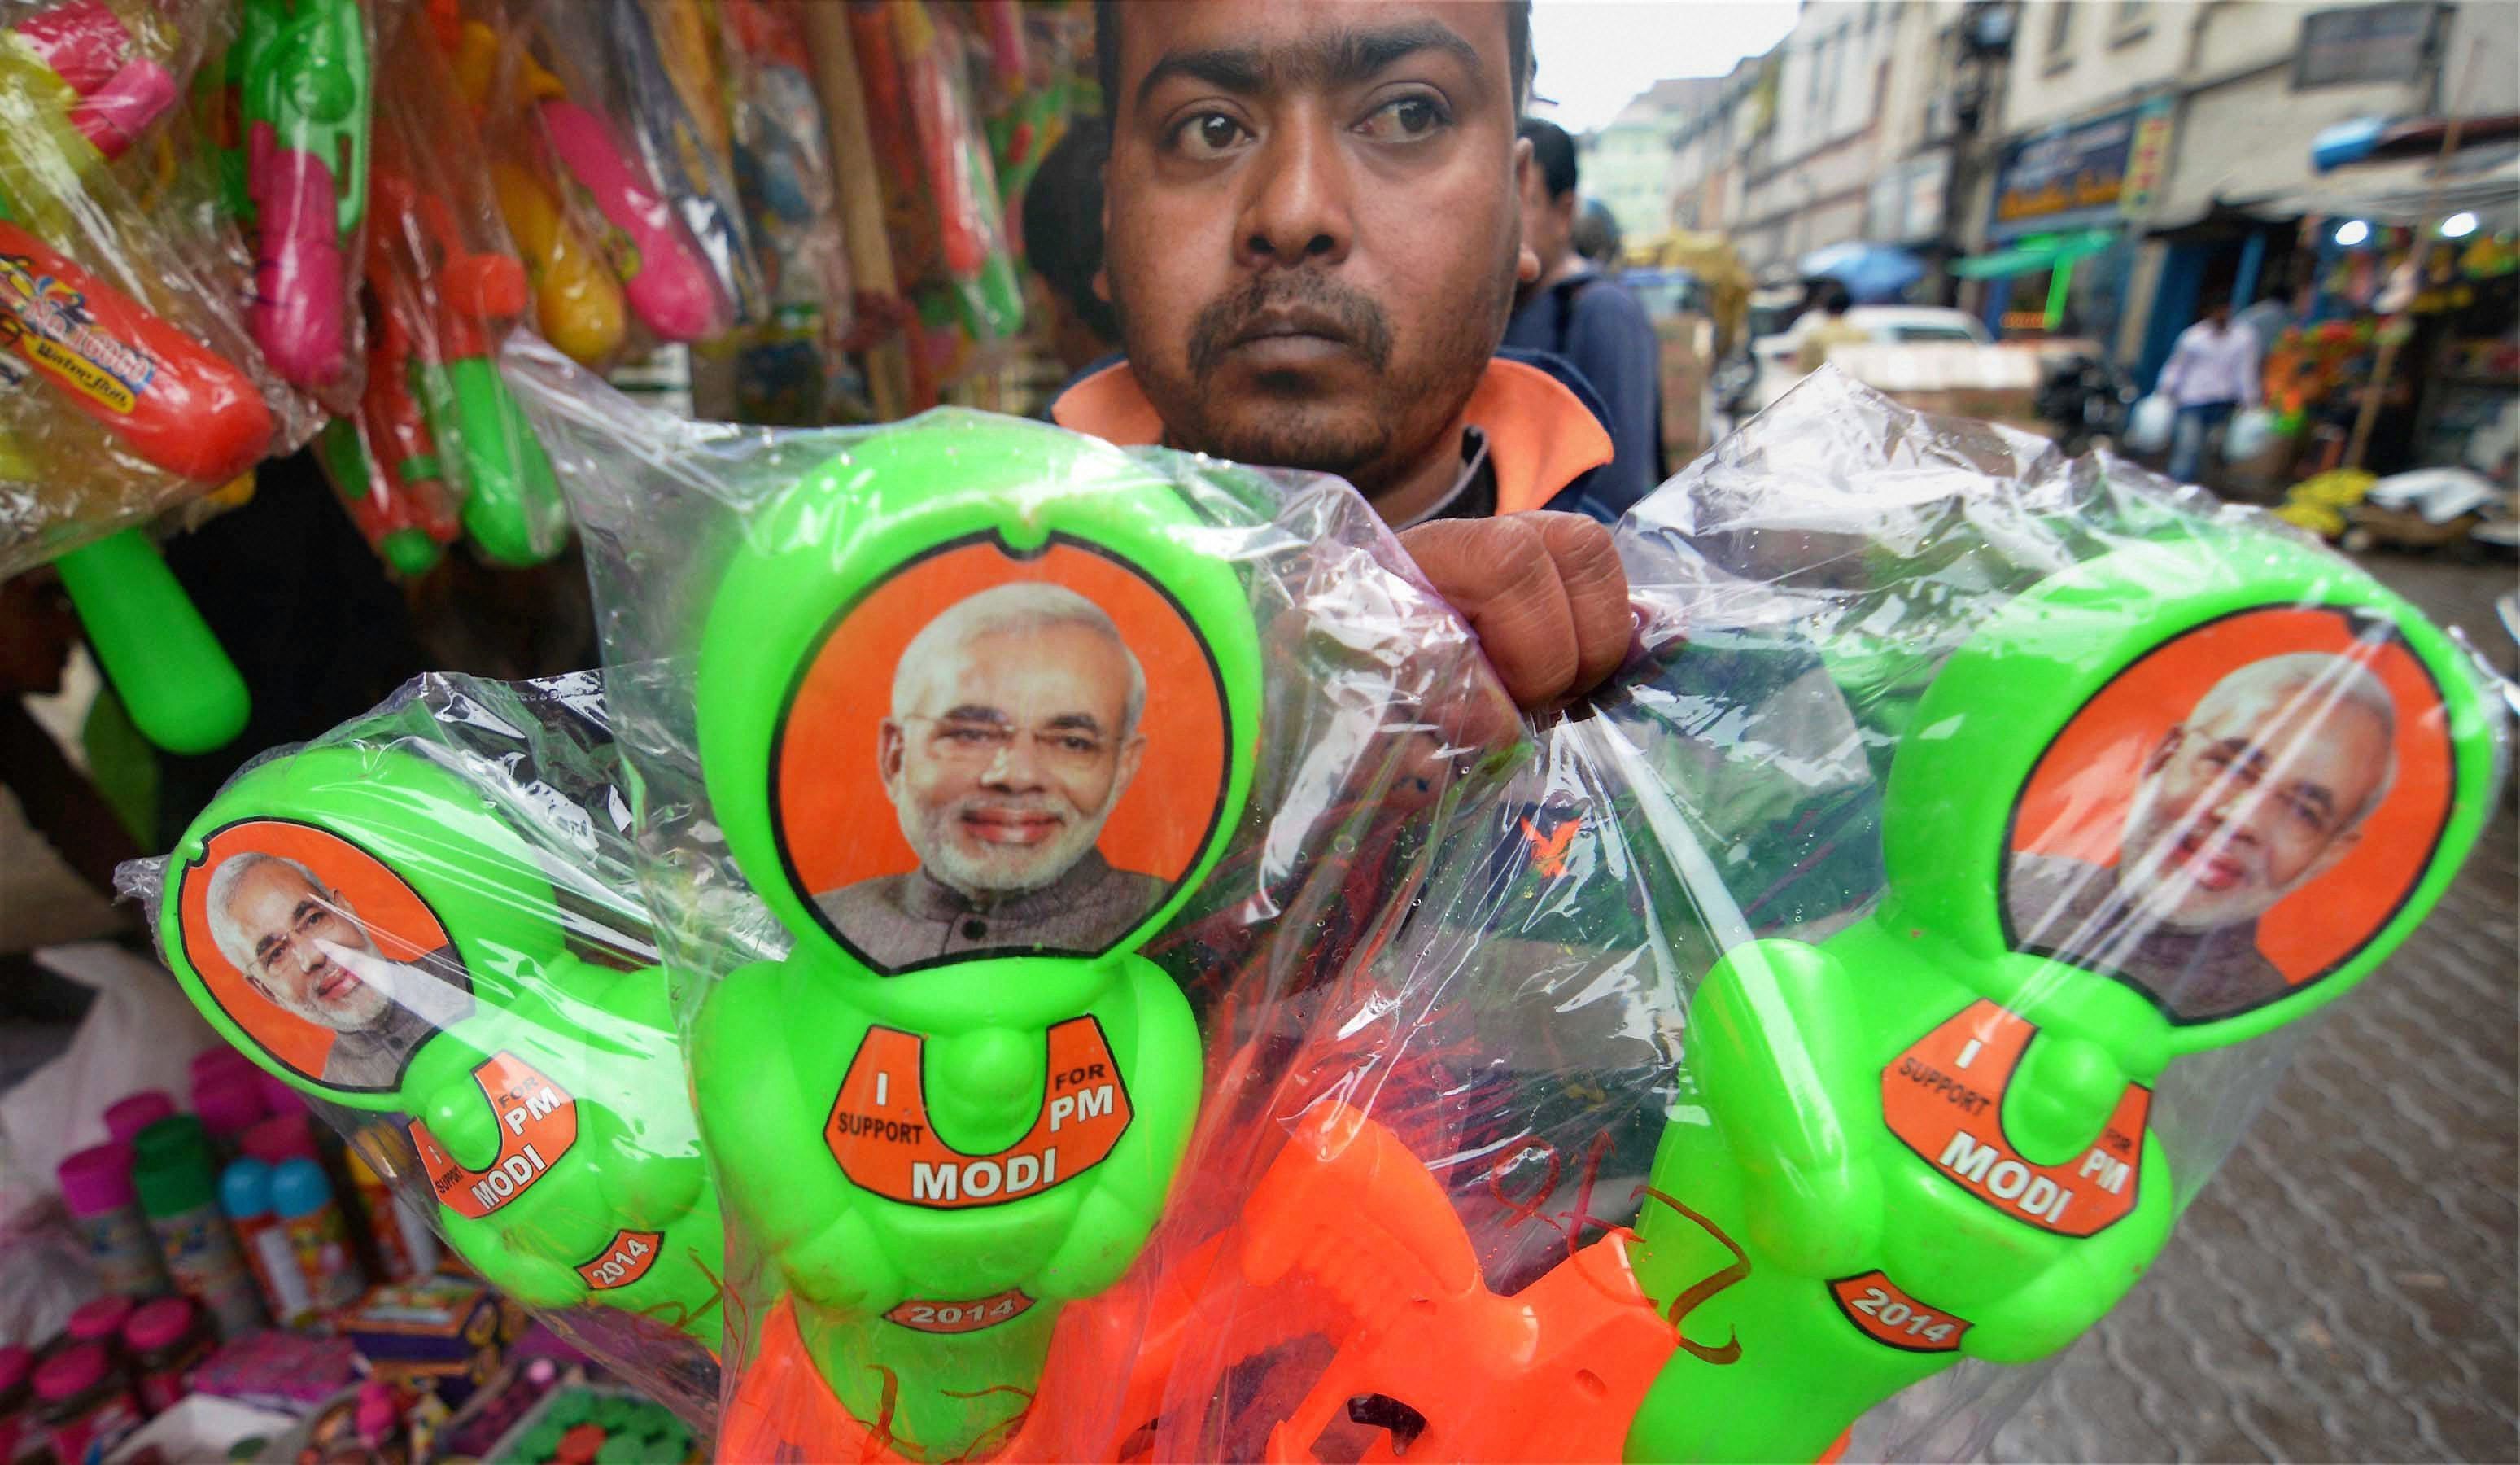 A vendor sells water-guns with photographs of Prime Minister Narendra Modi ahead of Holi' in Guwahati on Saturday. Credit: PTI